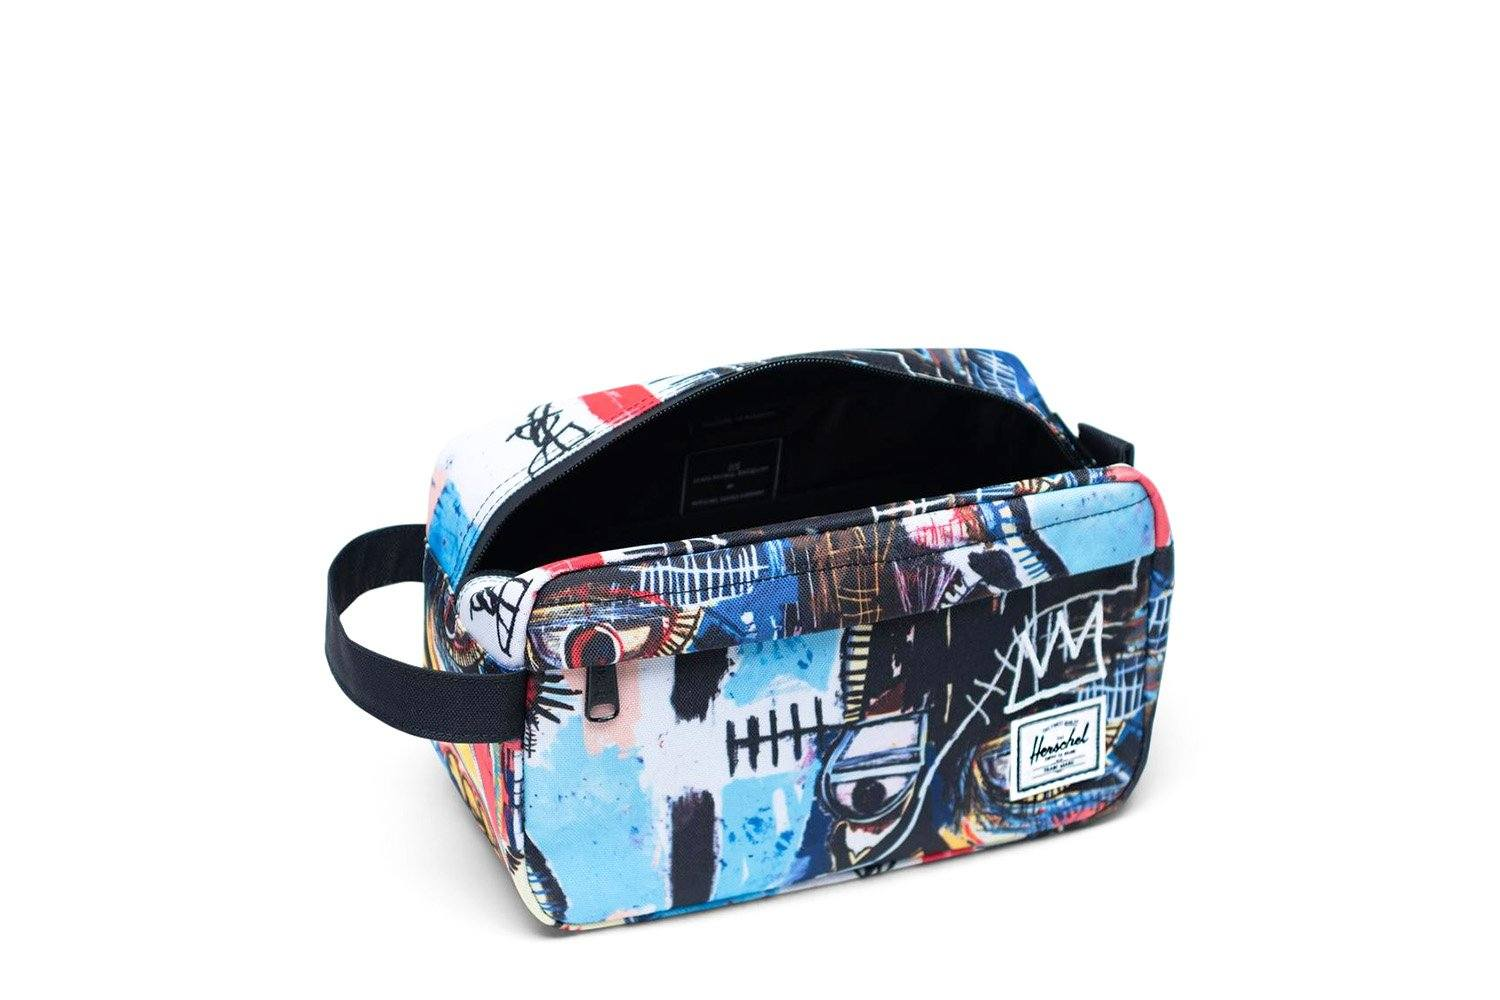 JEAN-MICHEL BASQUIAT CHAPTER - 10039-03032 BAGS HERSCHEL